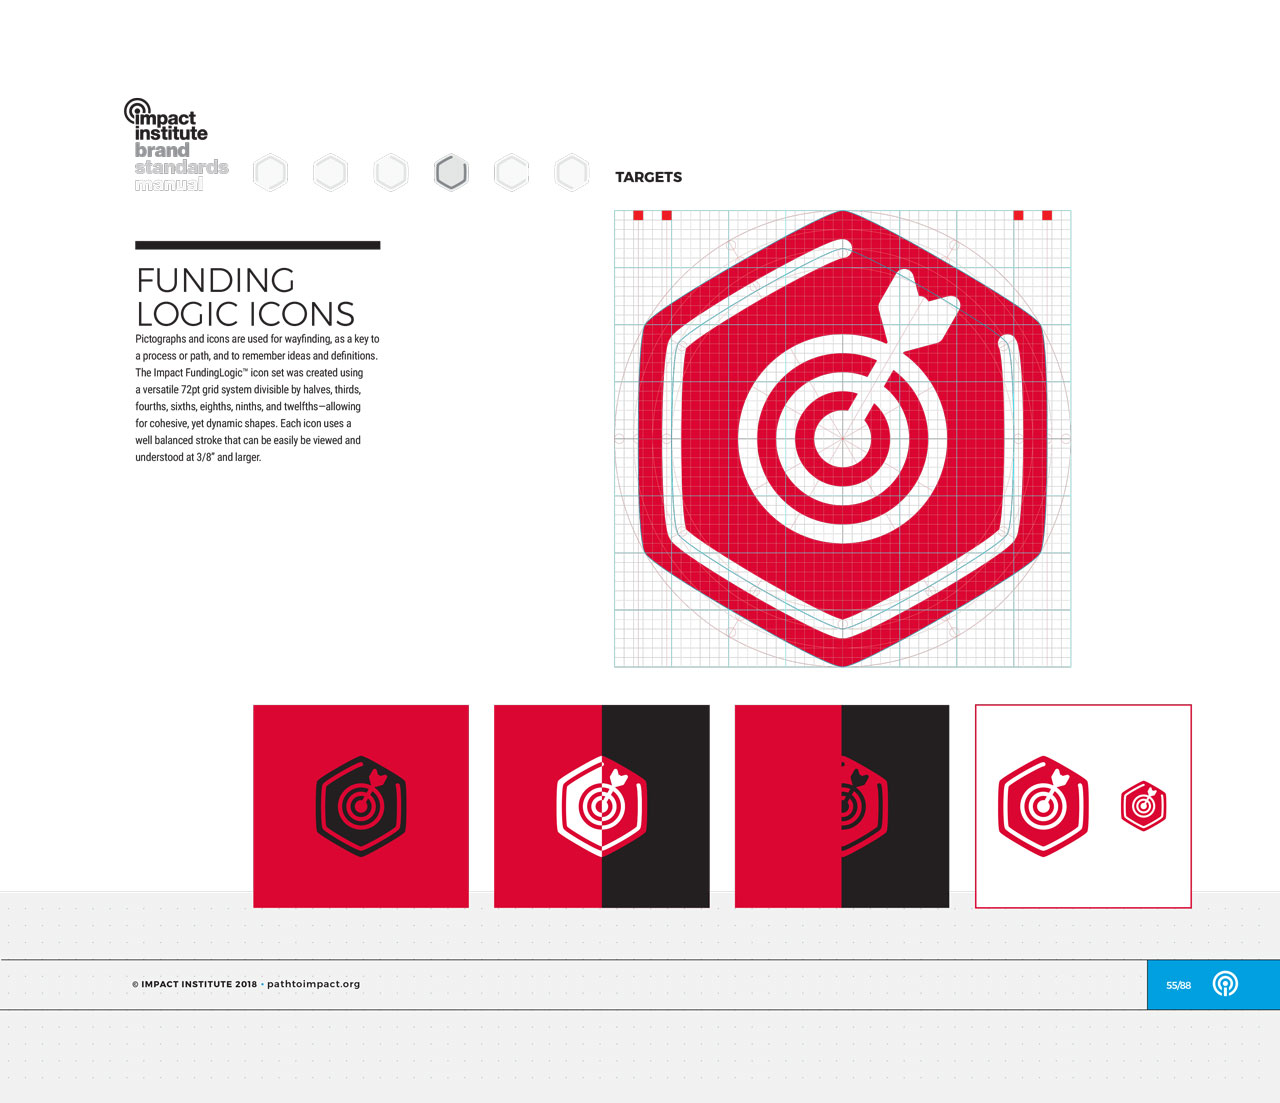 Single page from brand identity manual displaying red, hexagonal target icon